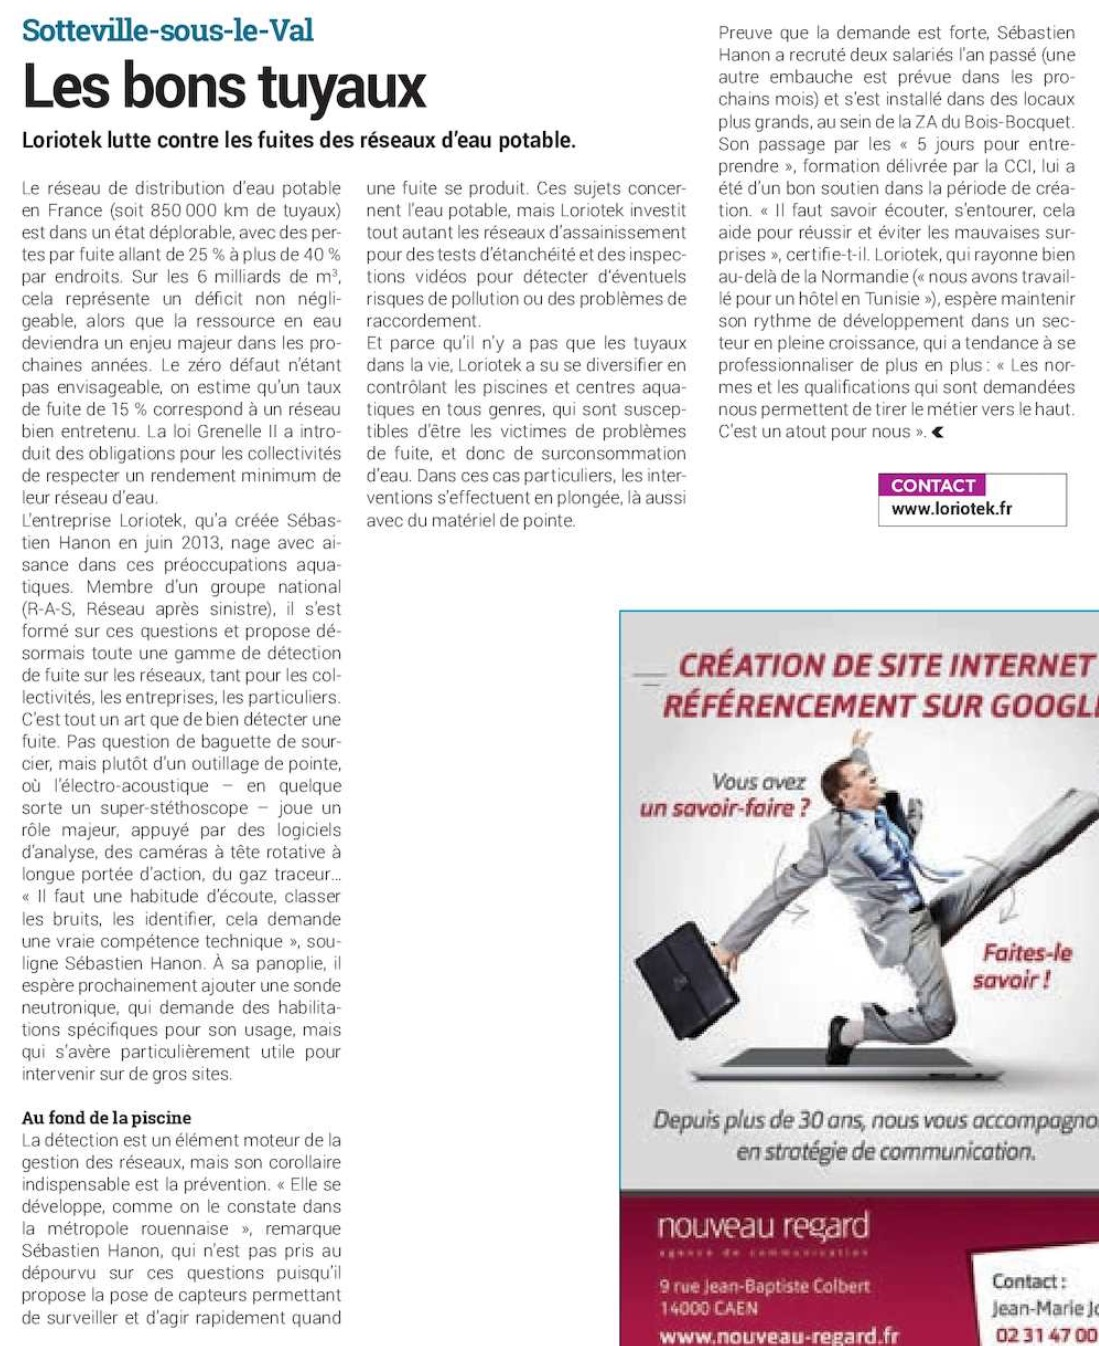 Article mars 2016